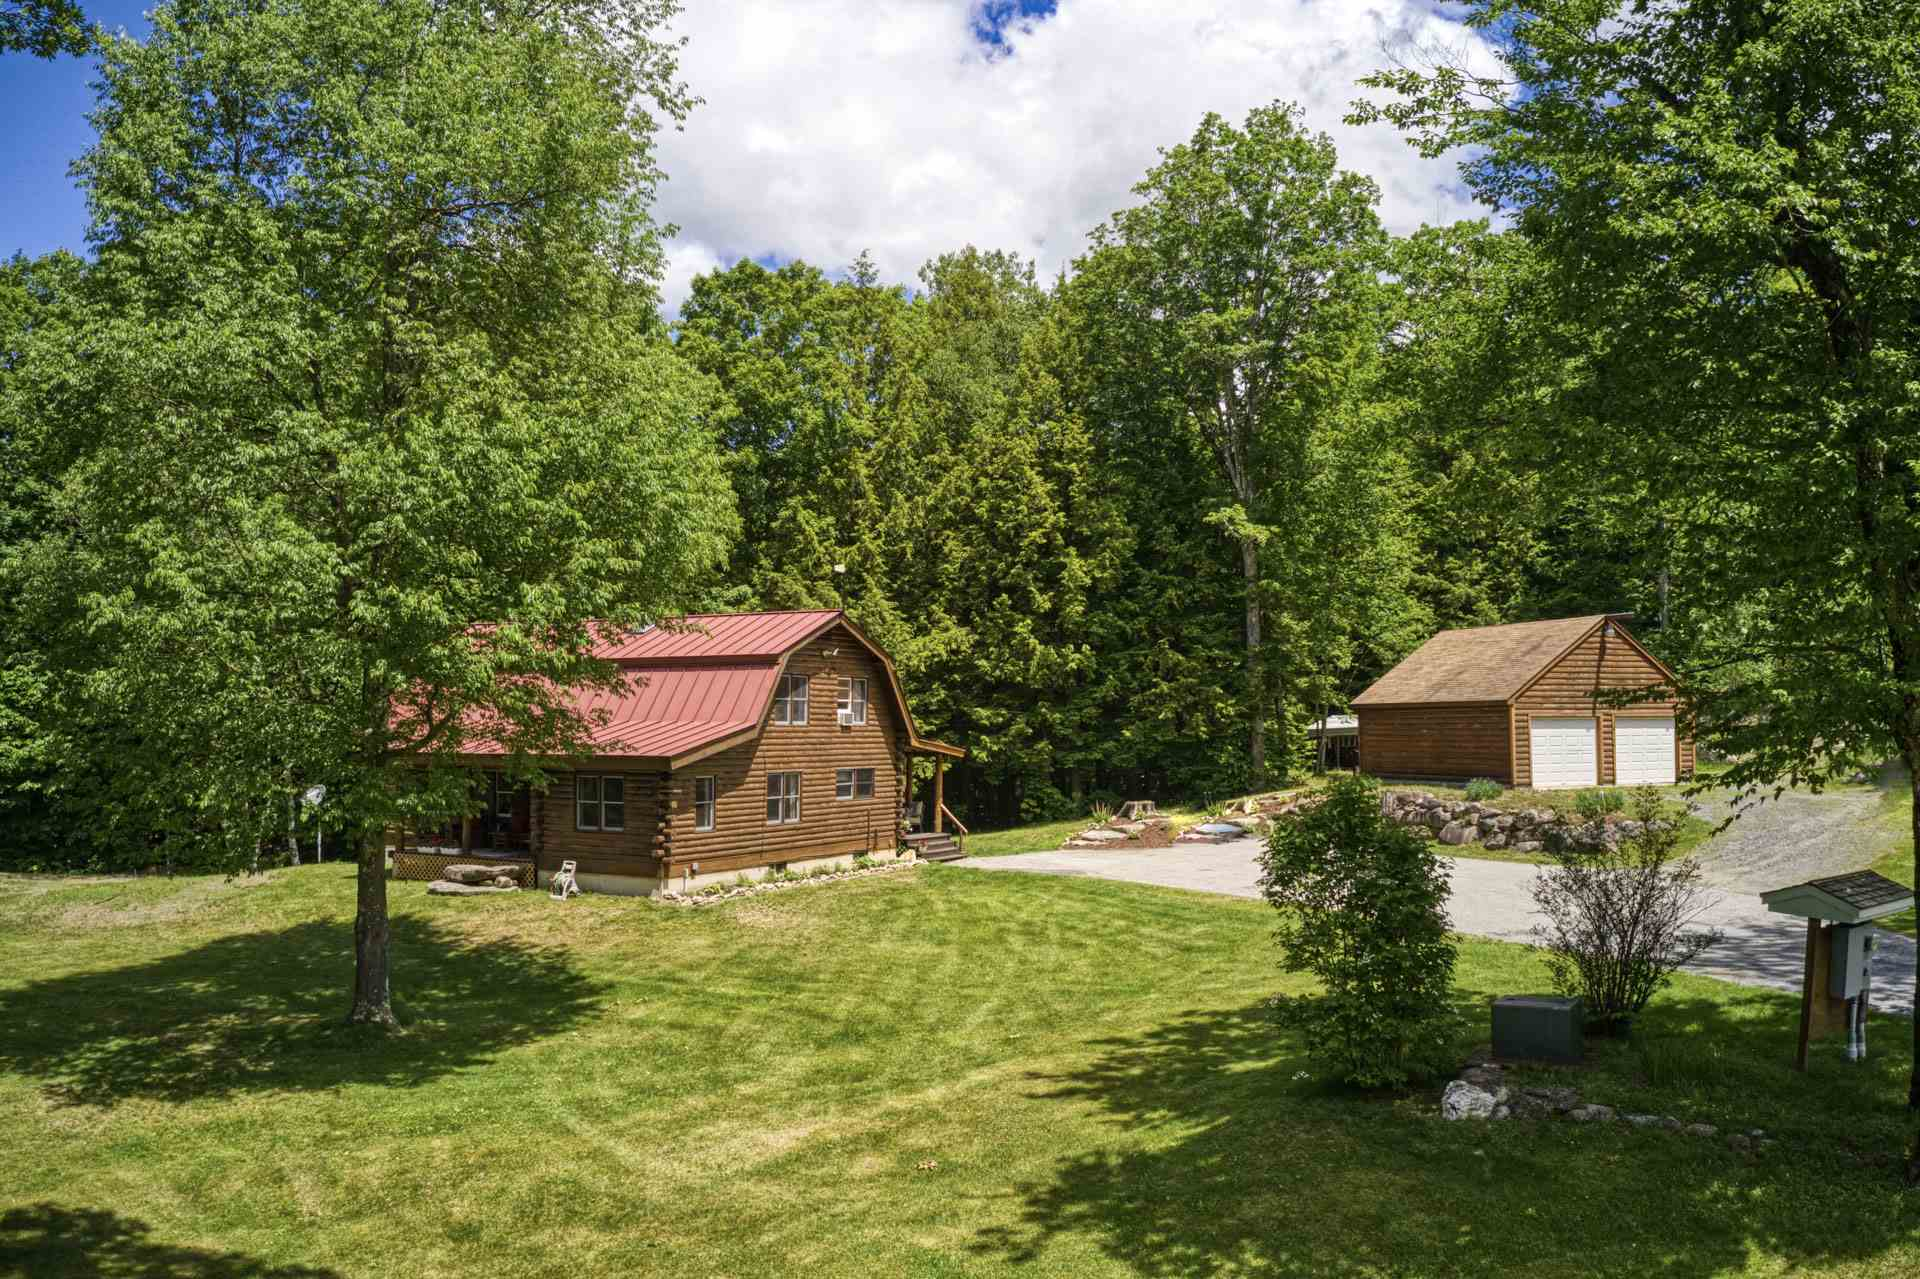 image of Unity NH Home | sq.ft. 3392